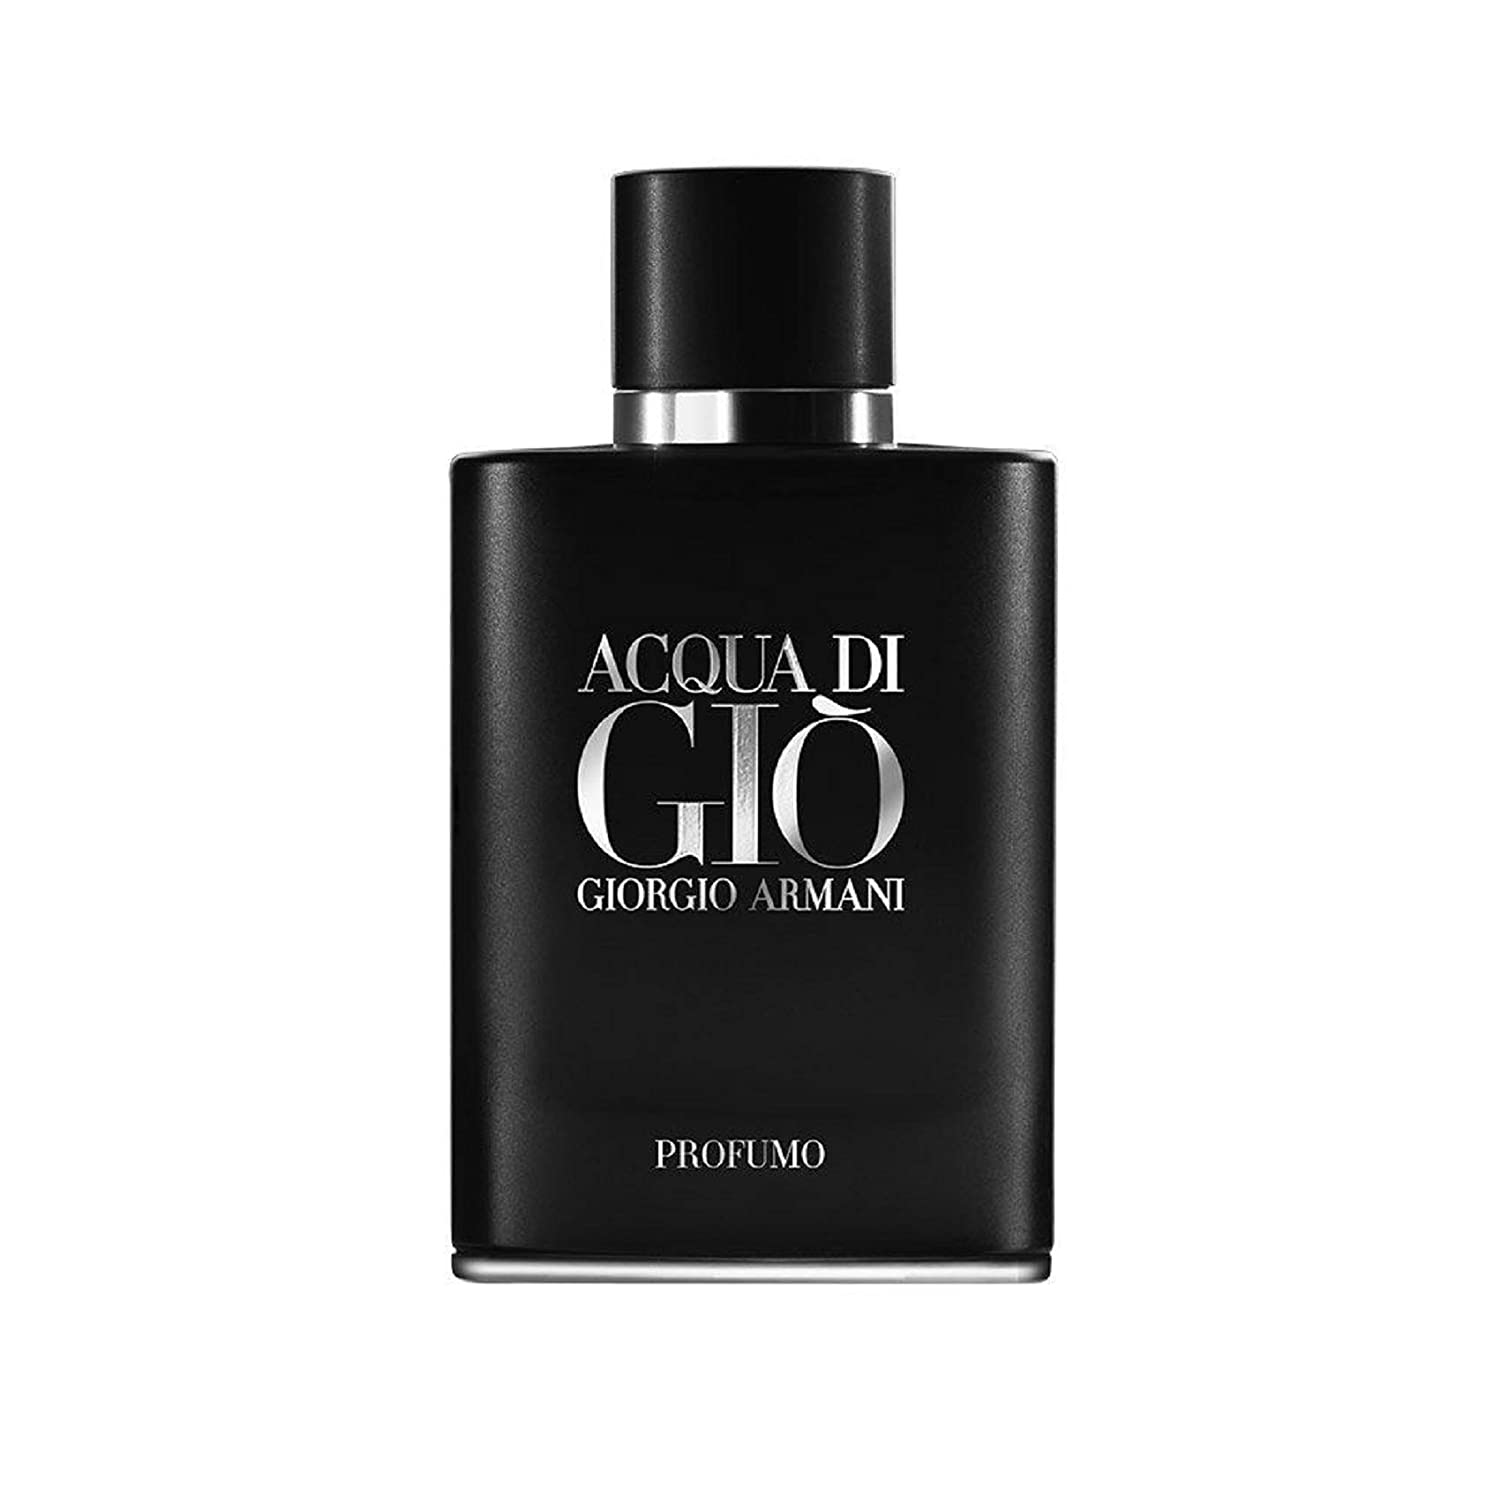 a good cologne that'll boost your confidence around women